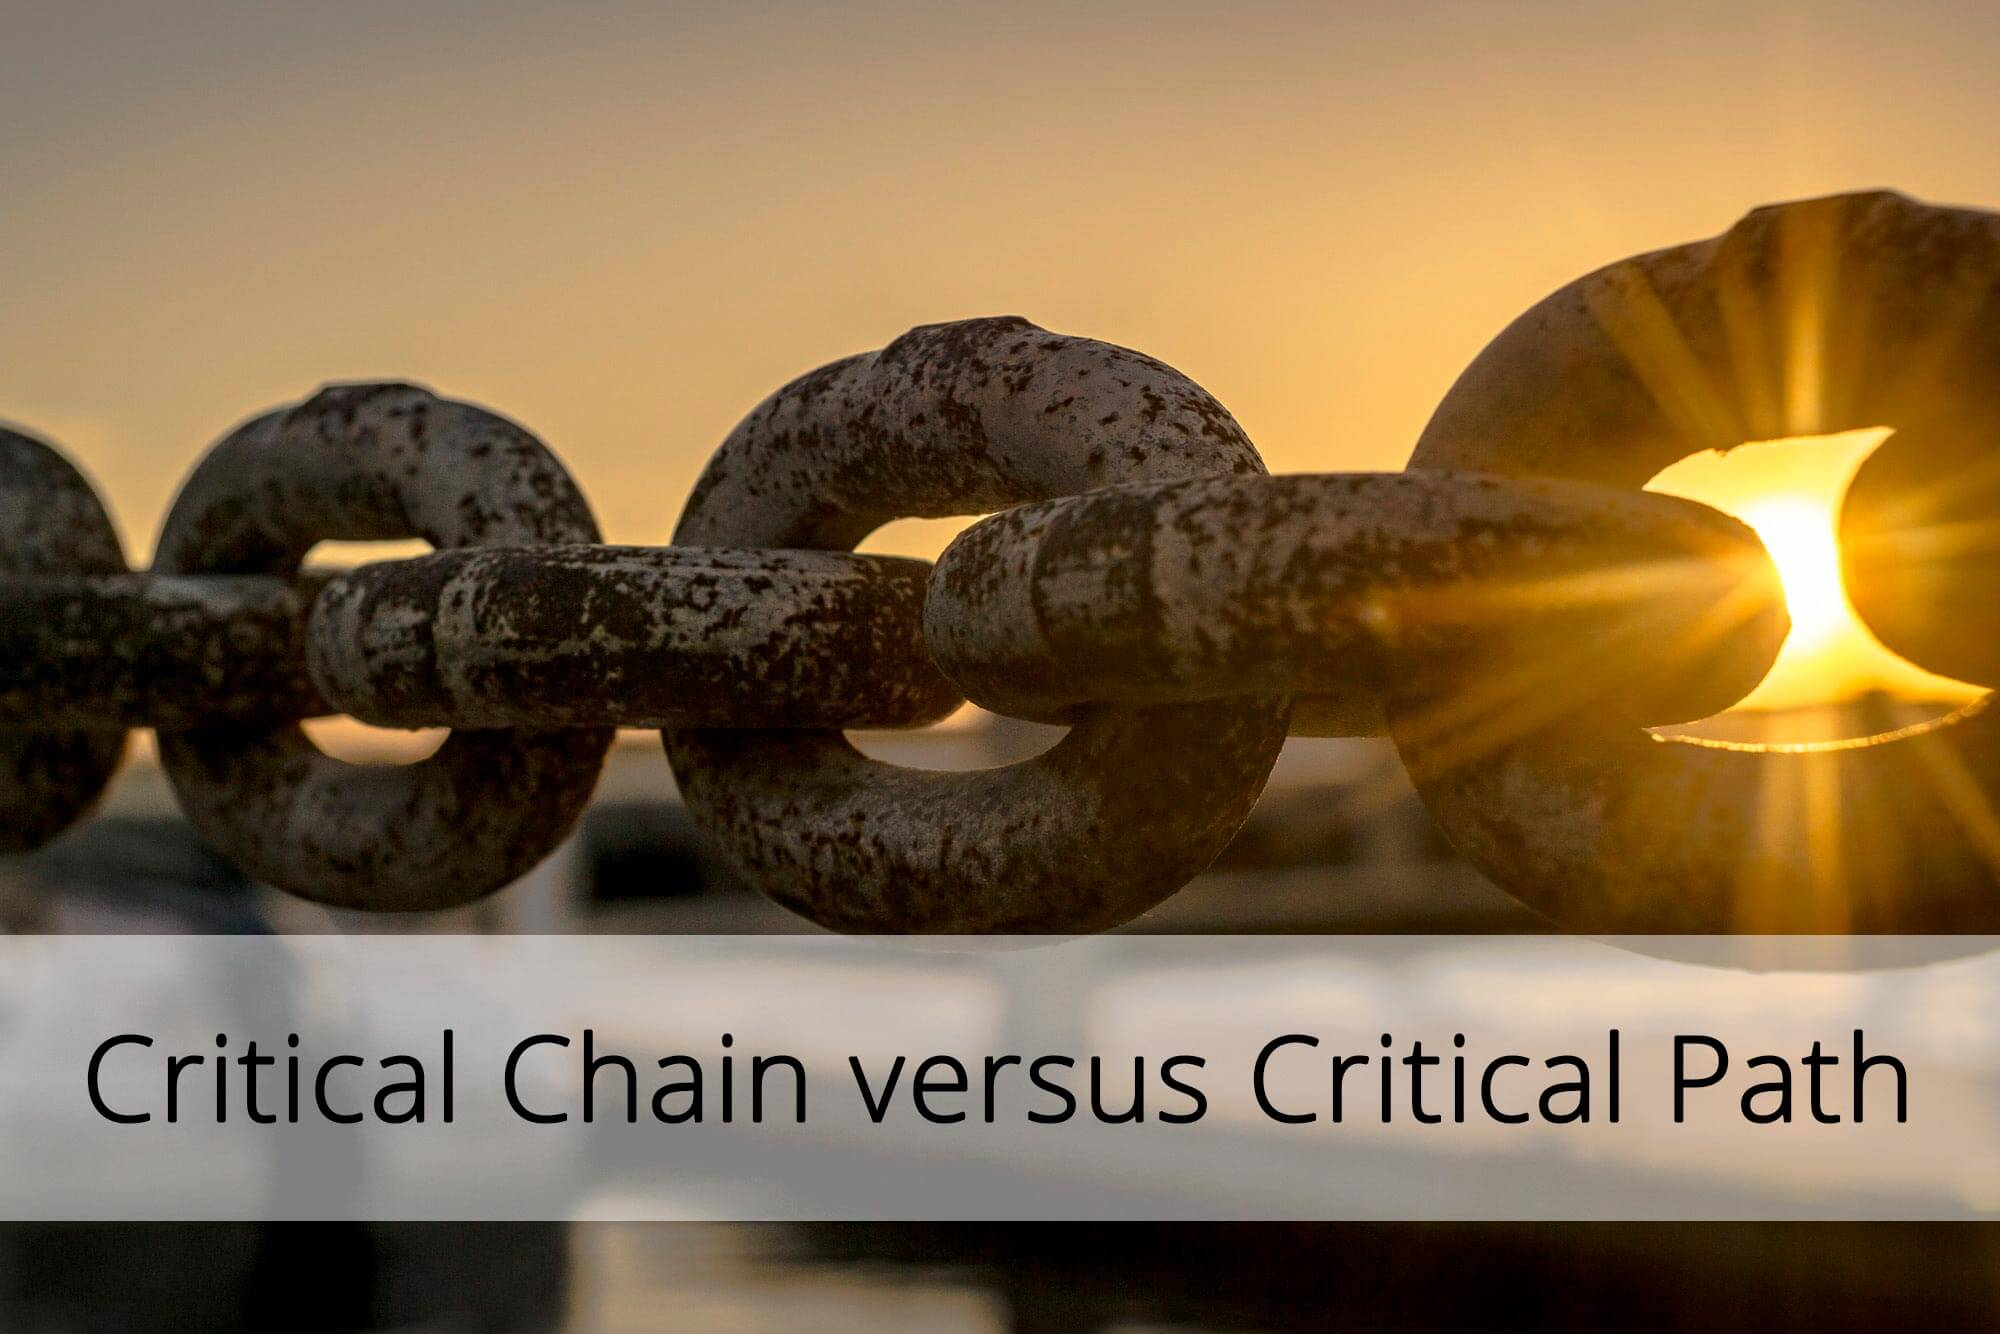 Blog post: What is the difference between the critical chain and the critical path method in project management?